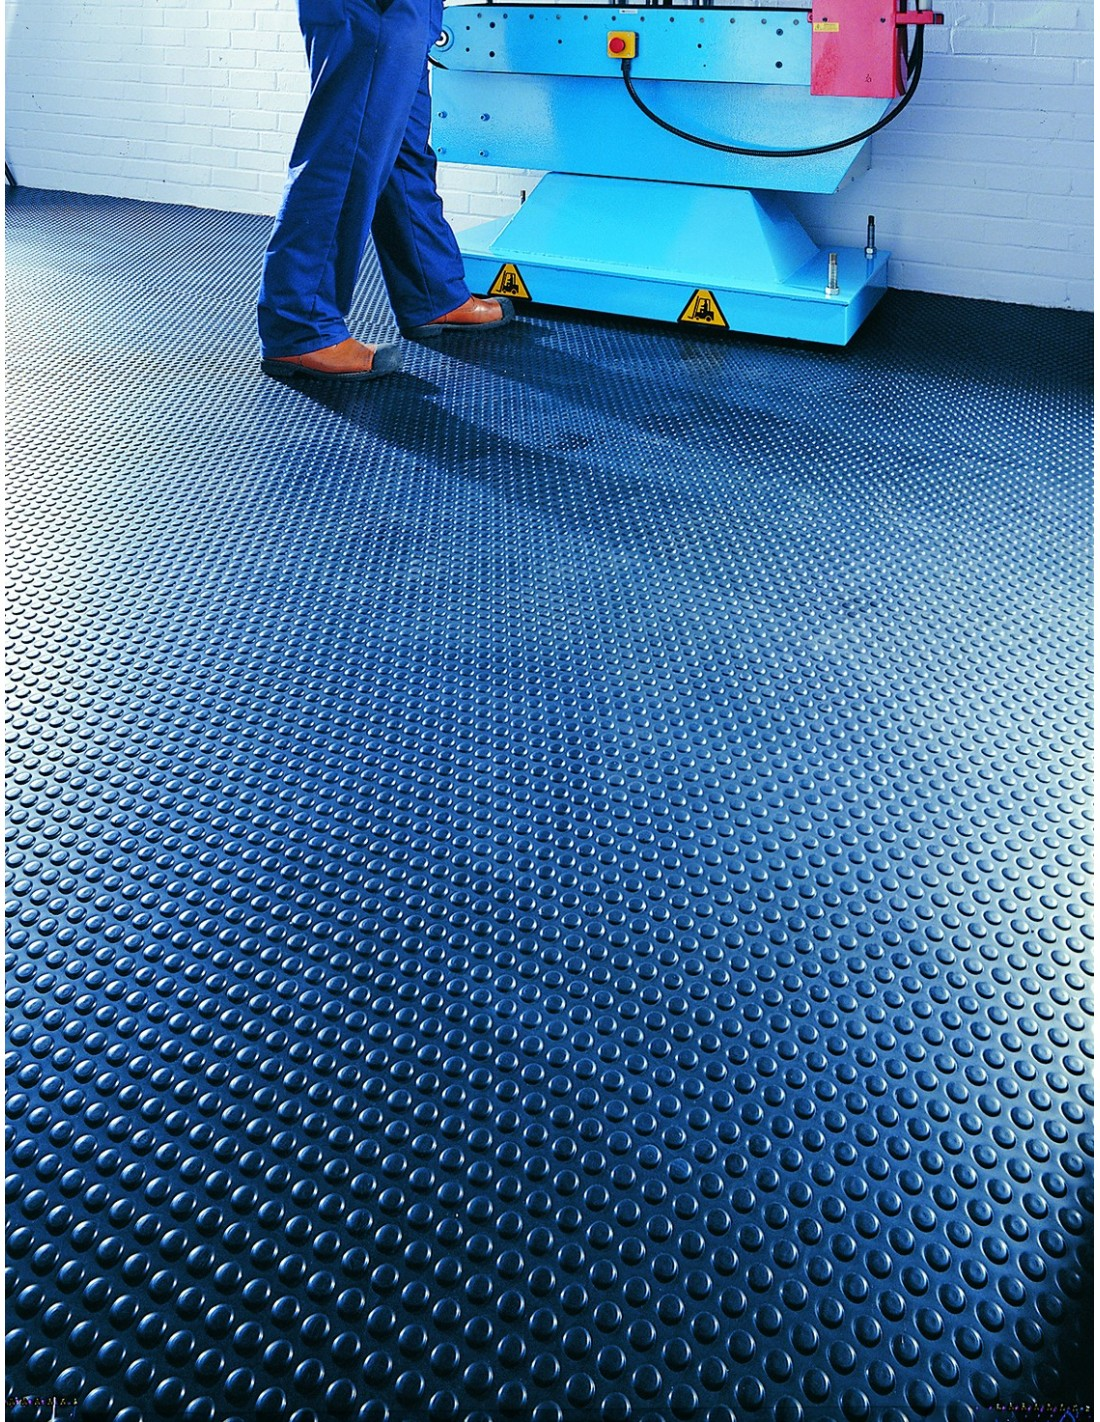 Flexi Button Studded Pvc Floor Matting Rolls Anti Slip